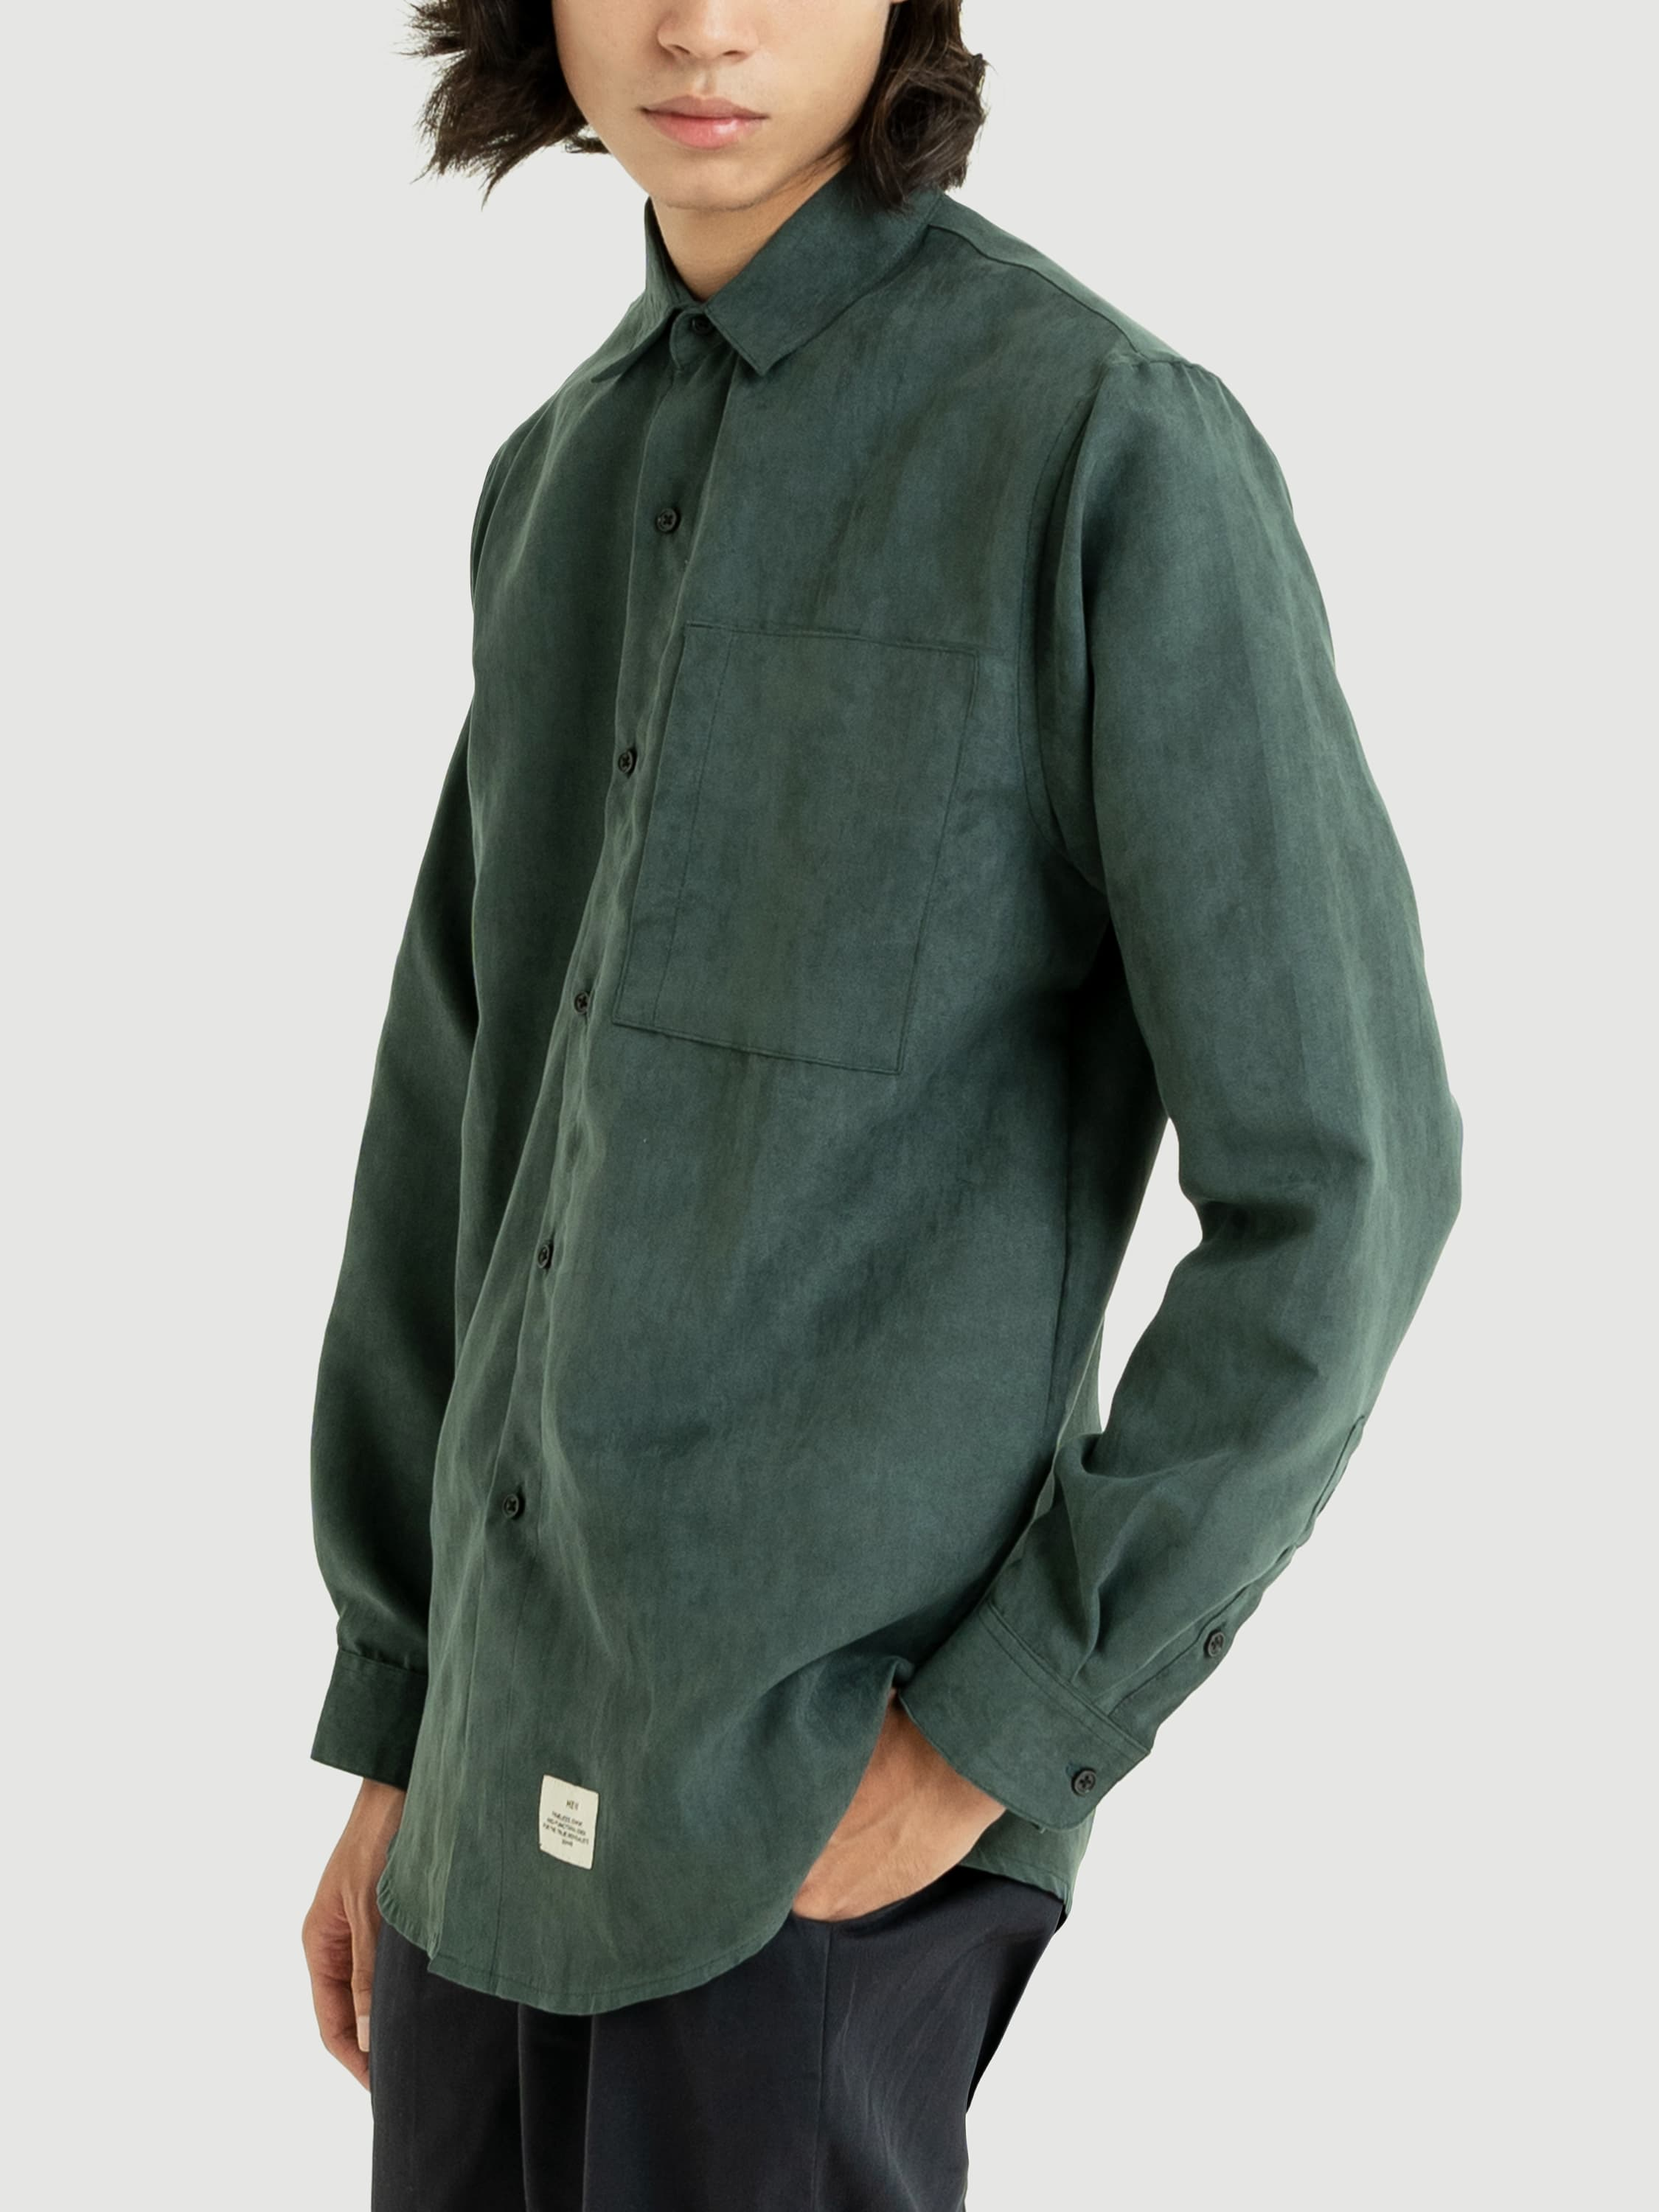 Classic Dark Olive Suede Shirt